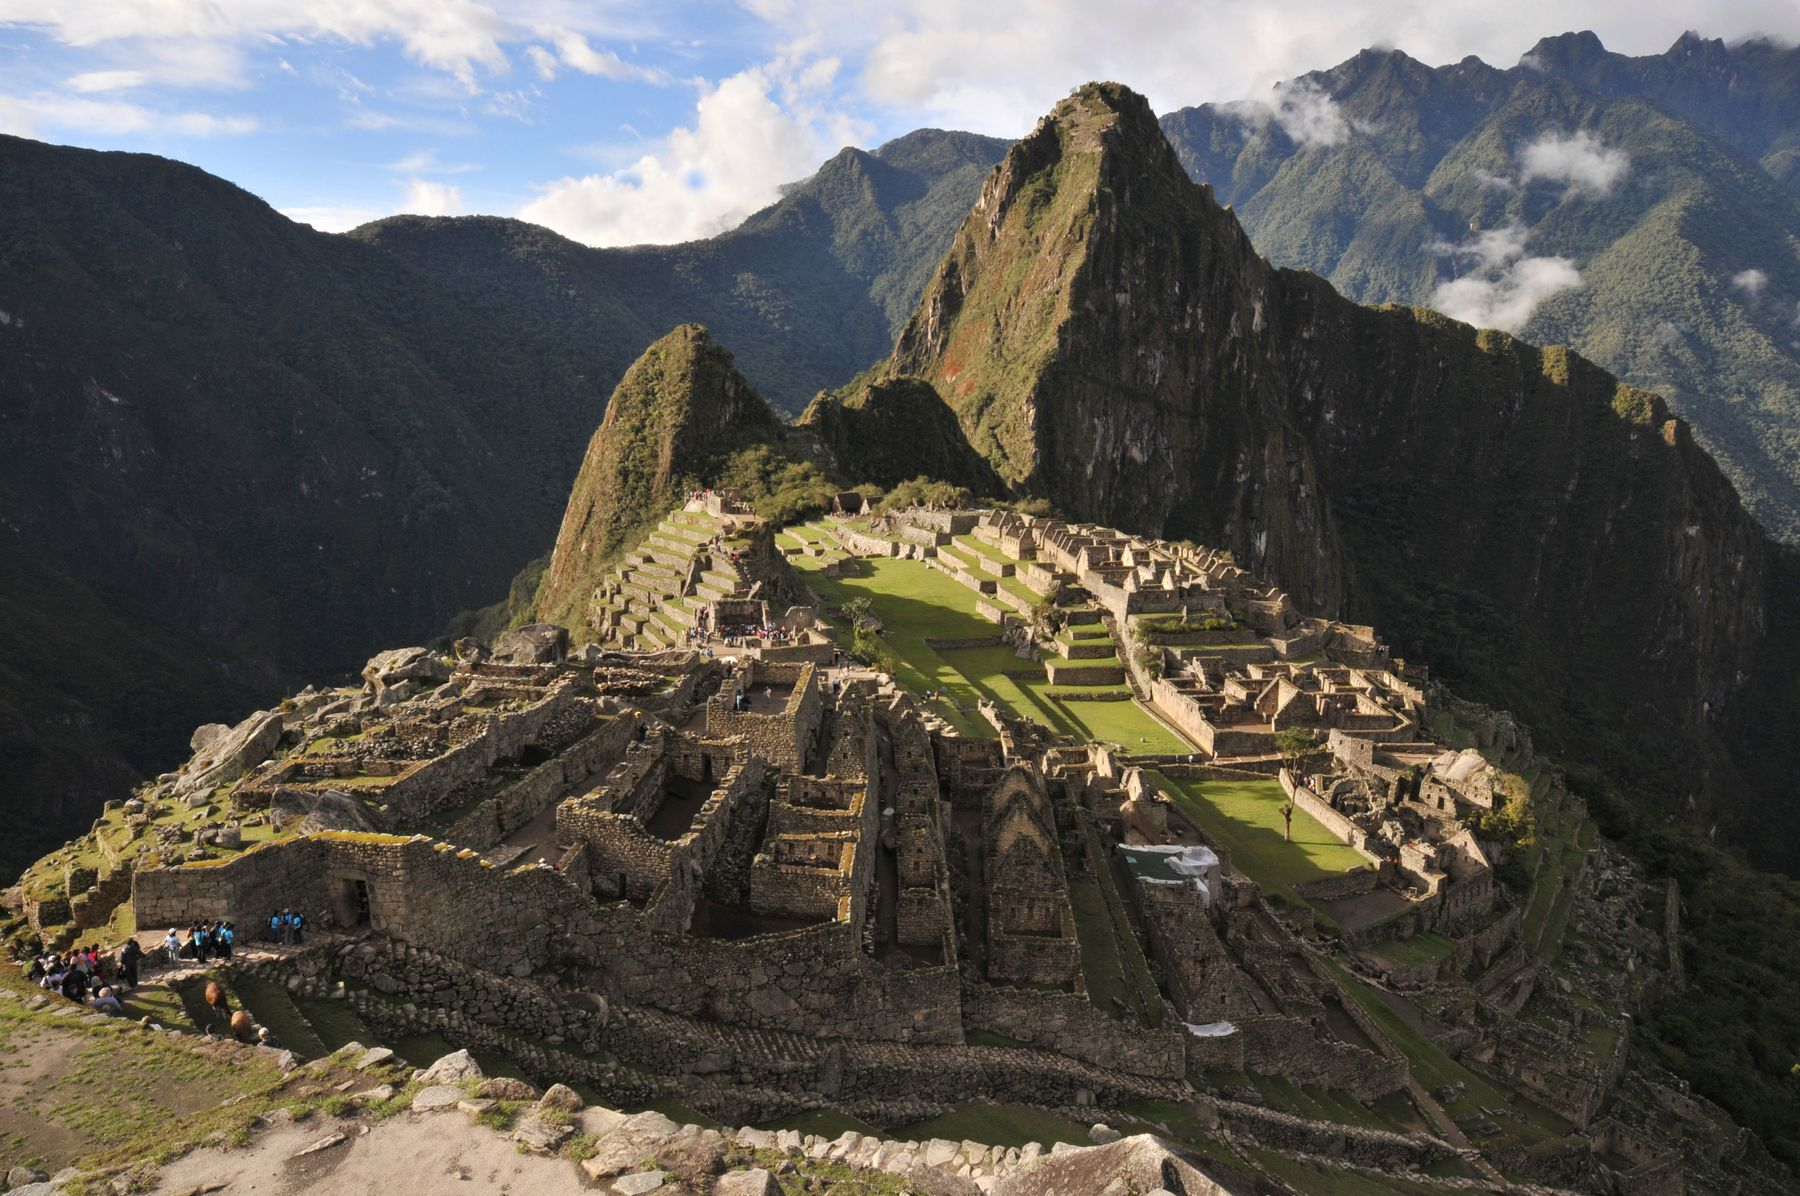 Machu Picchu, the end point of the Inca Trail multi-day hike